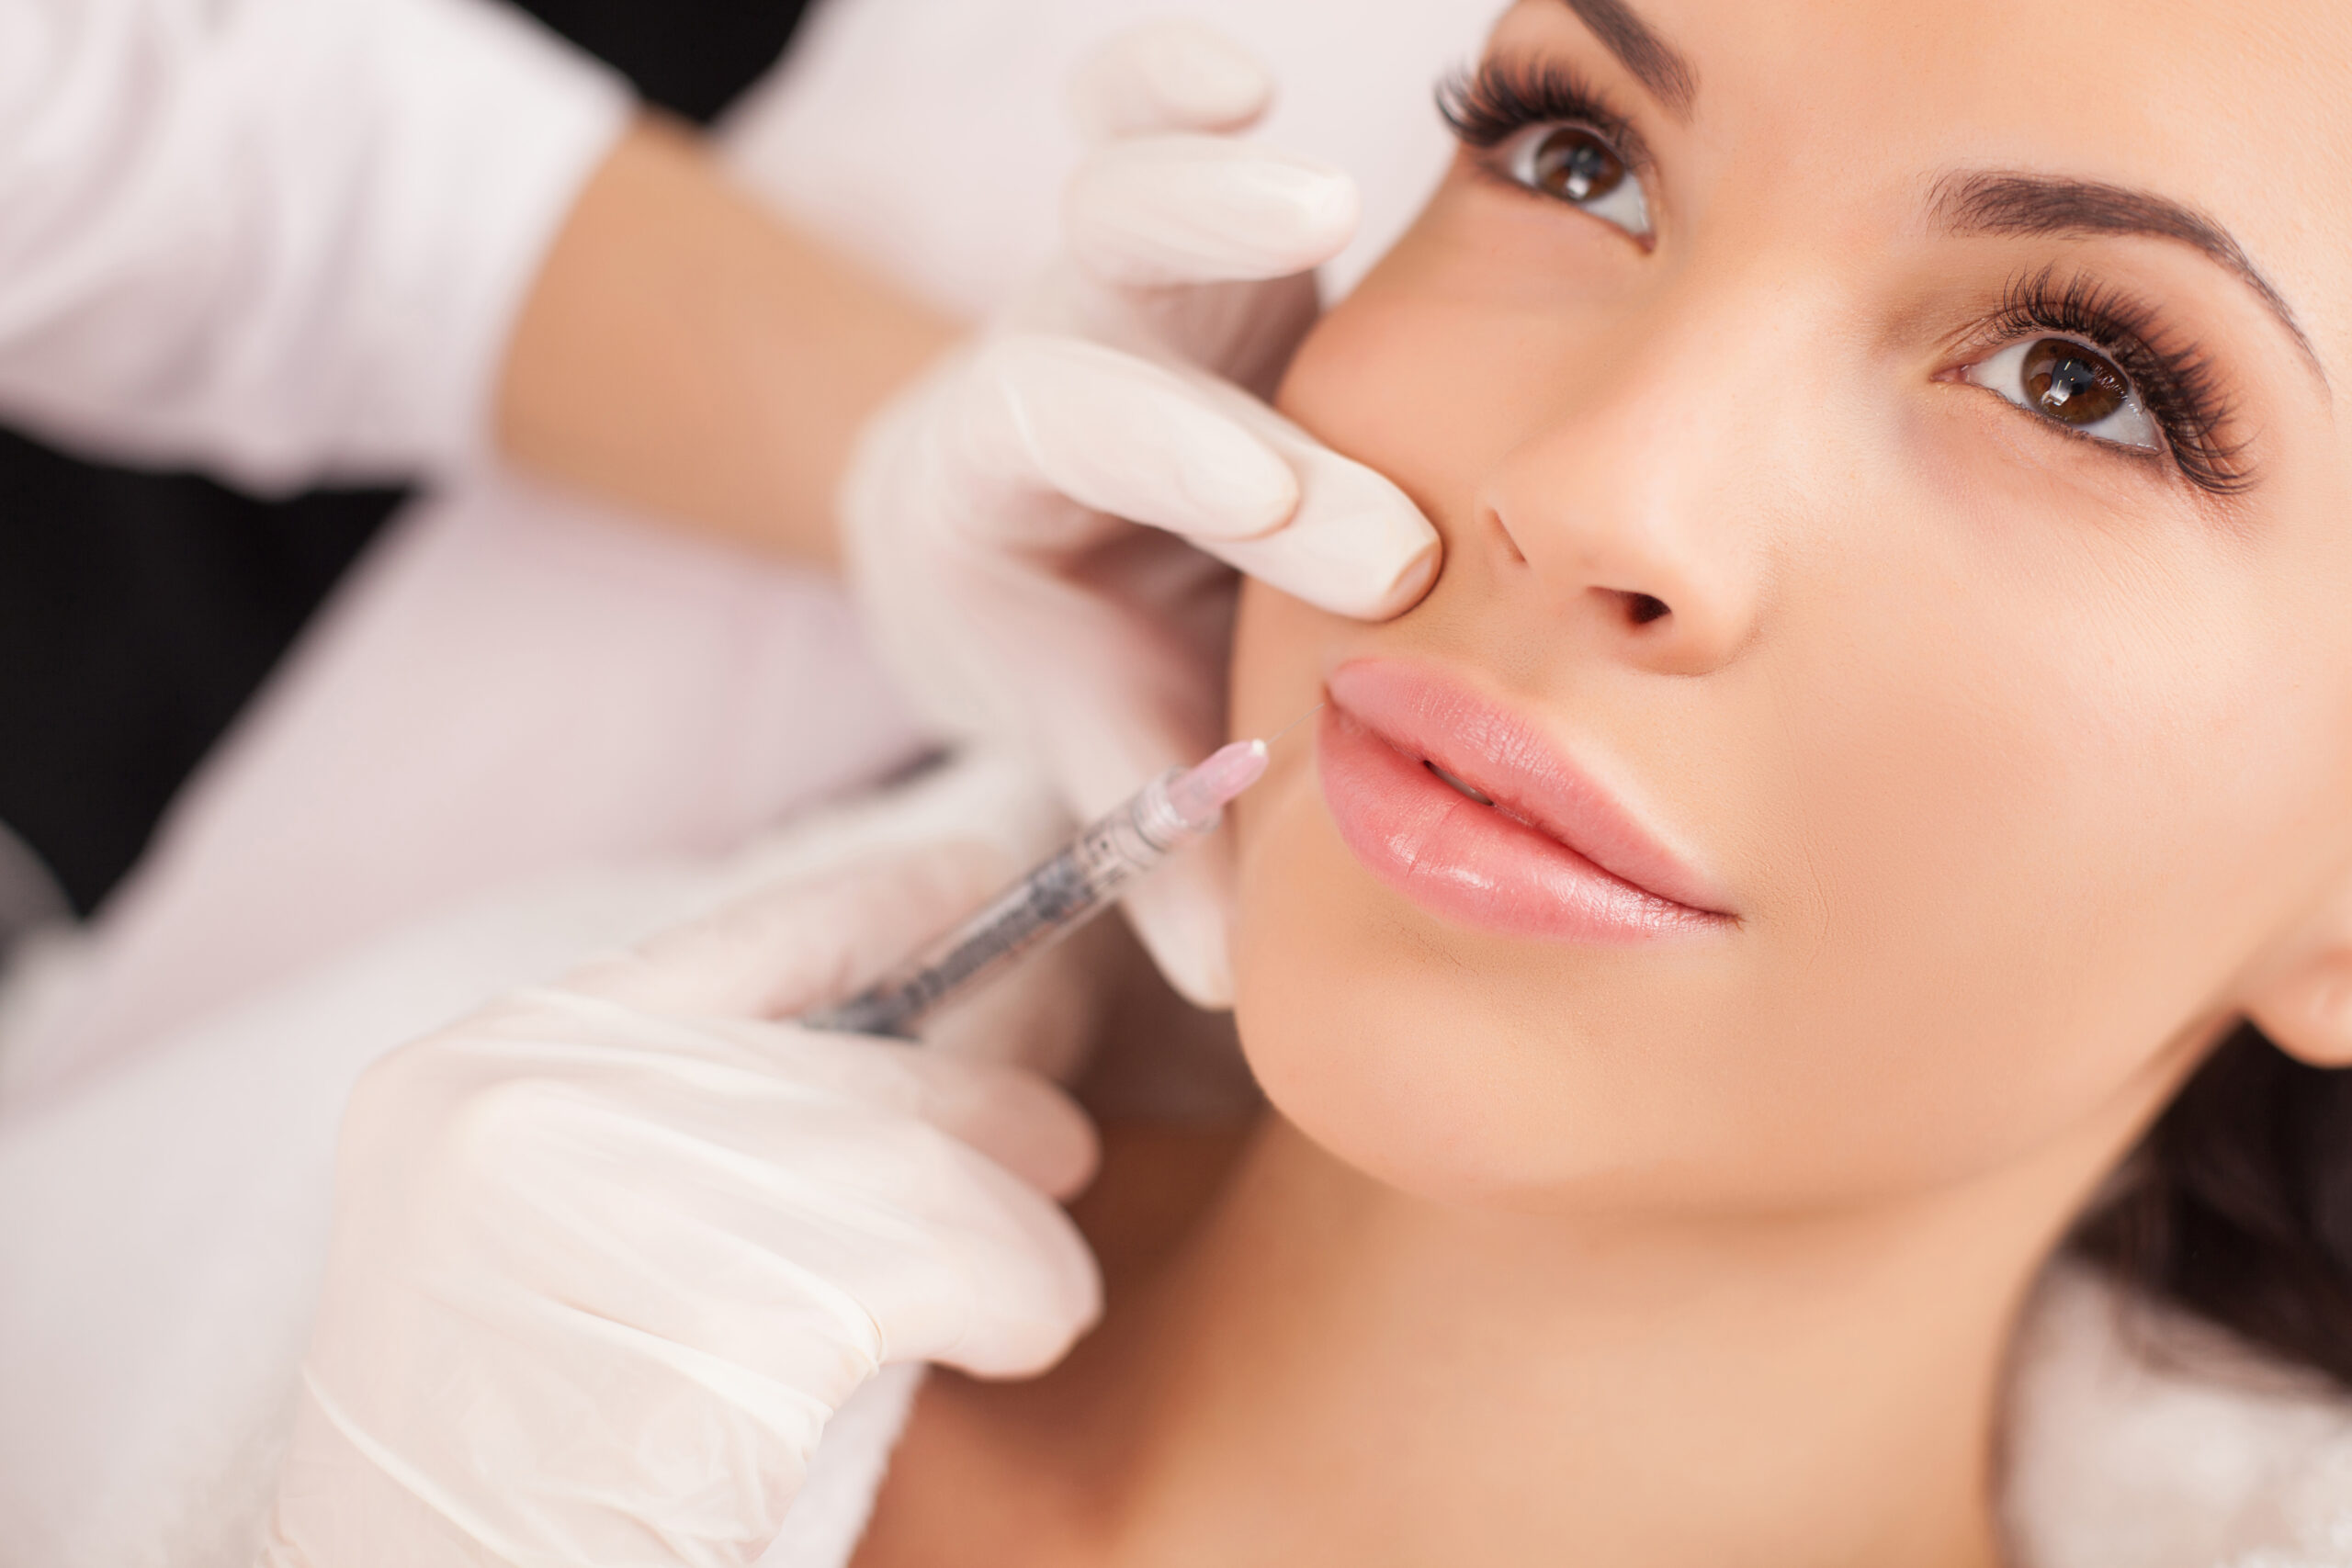 Models used to illustrate aesthetic treatments